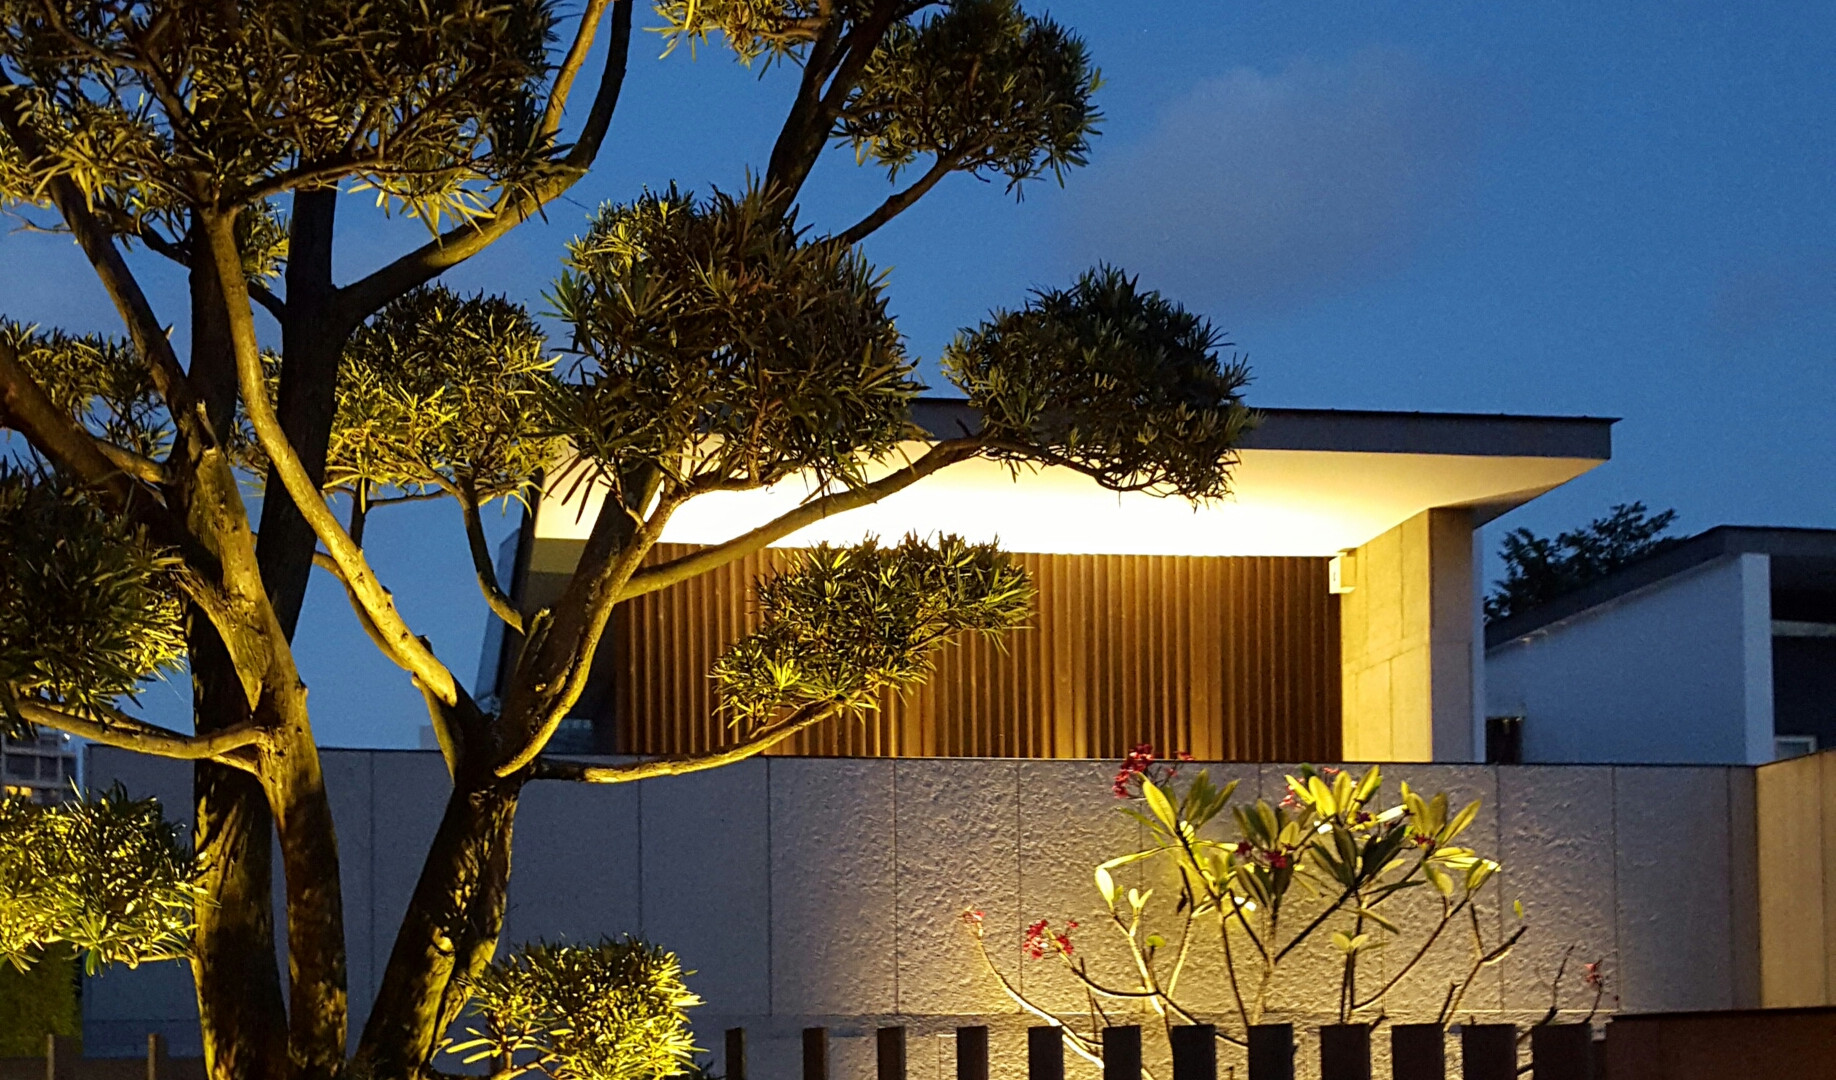 Lighting-Contrast Ratio-Residential Land